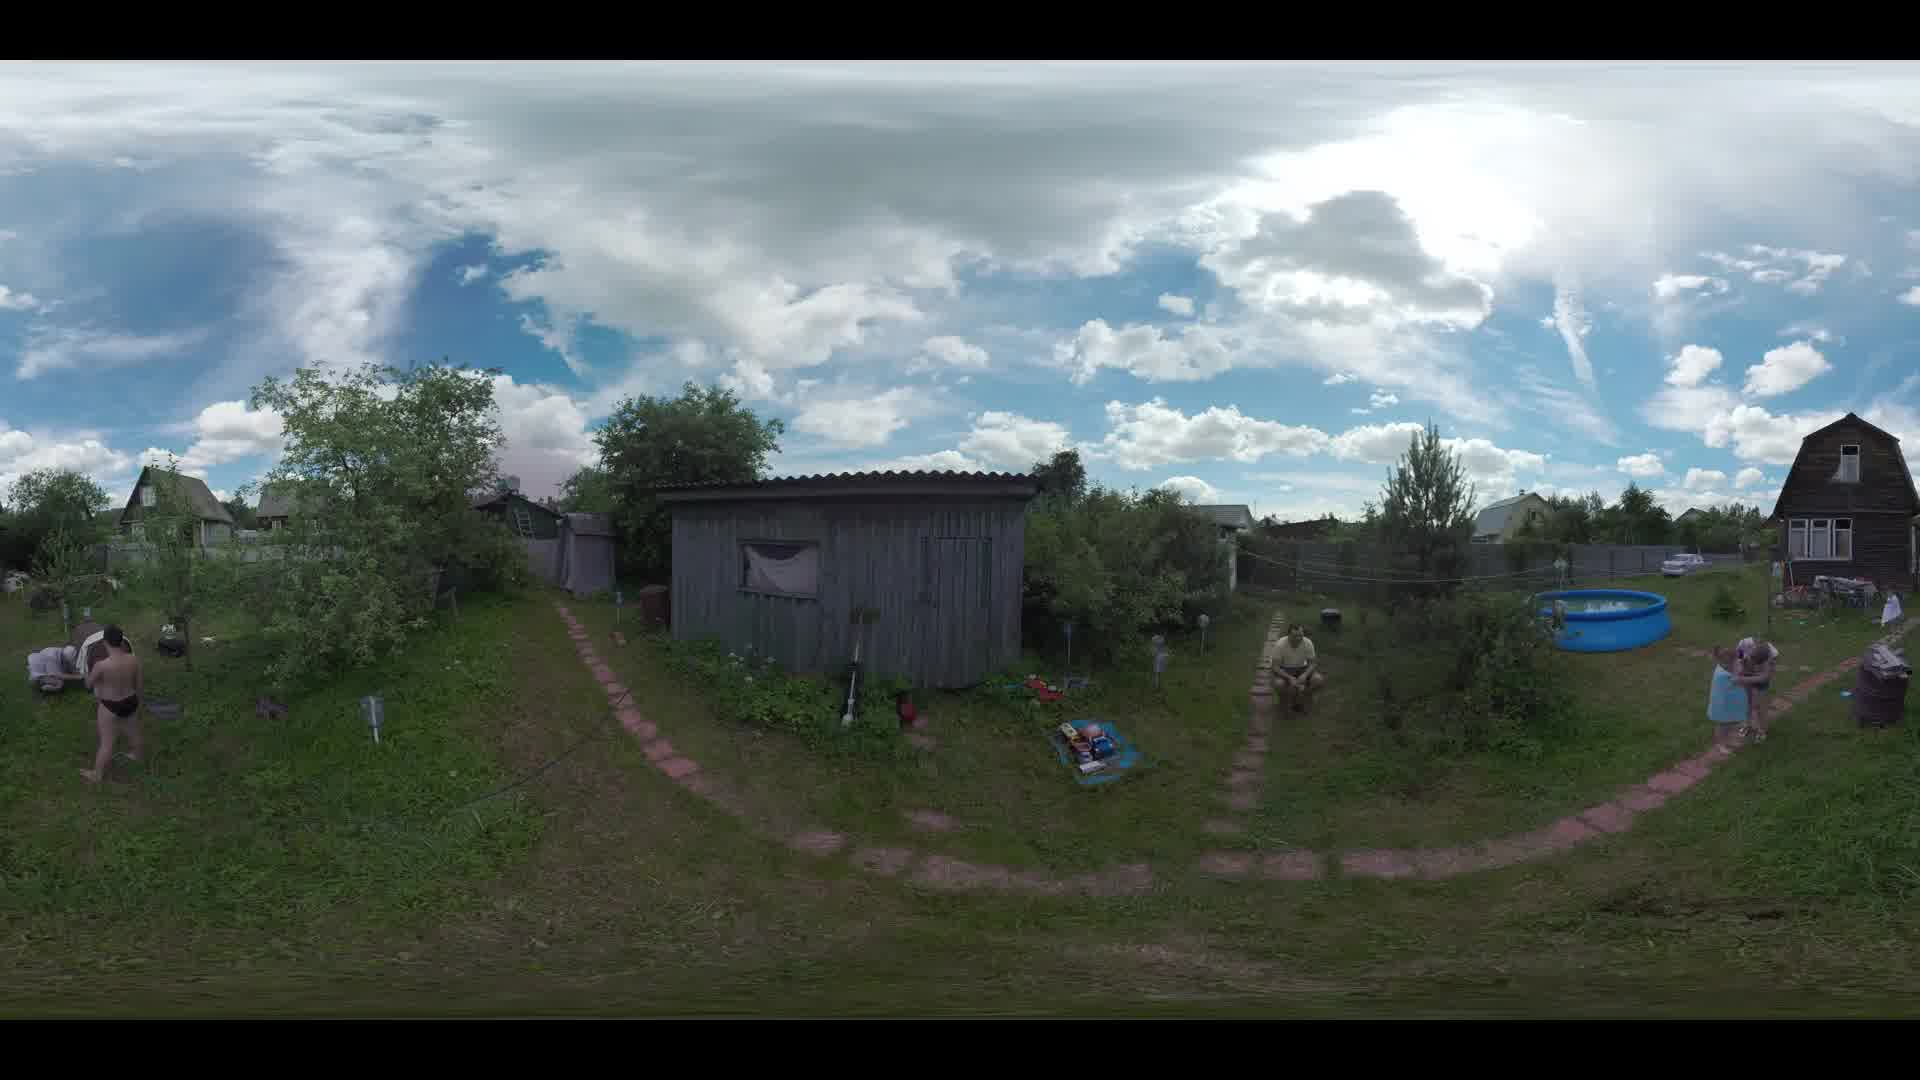 360 VR video. Wooden country house and family in the yard. Children wrapping into the towels after swimming in the outdoor pool. Leisure in the countryside. Ruza in Moscow region, Russia